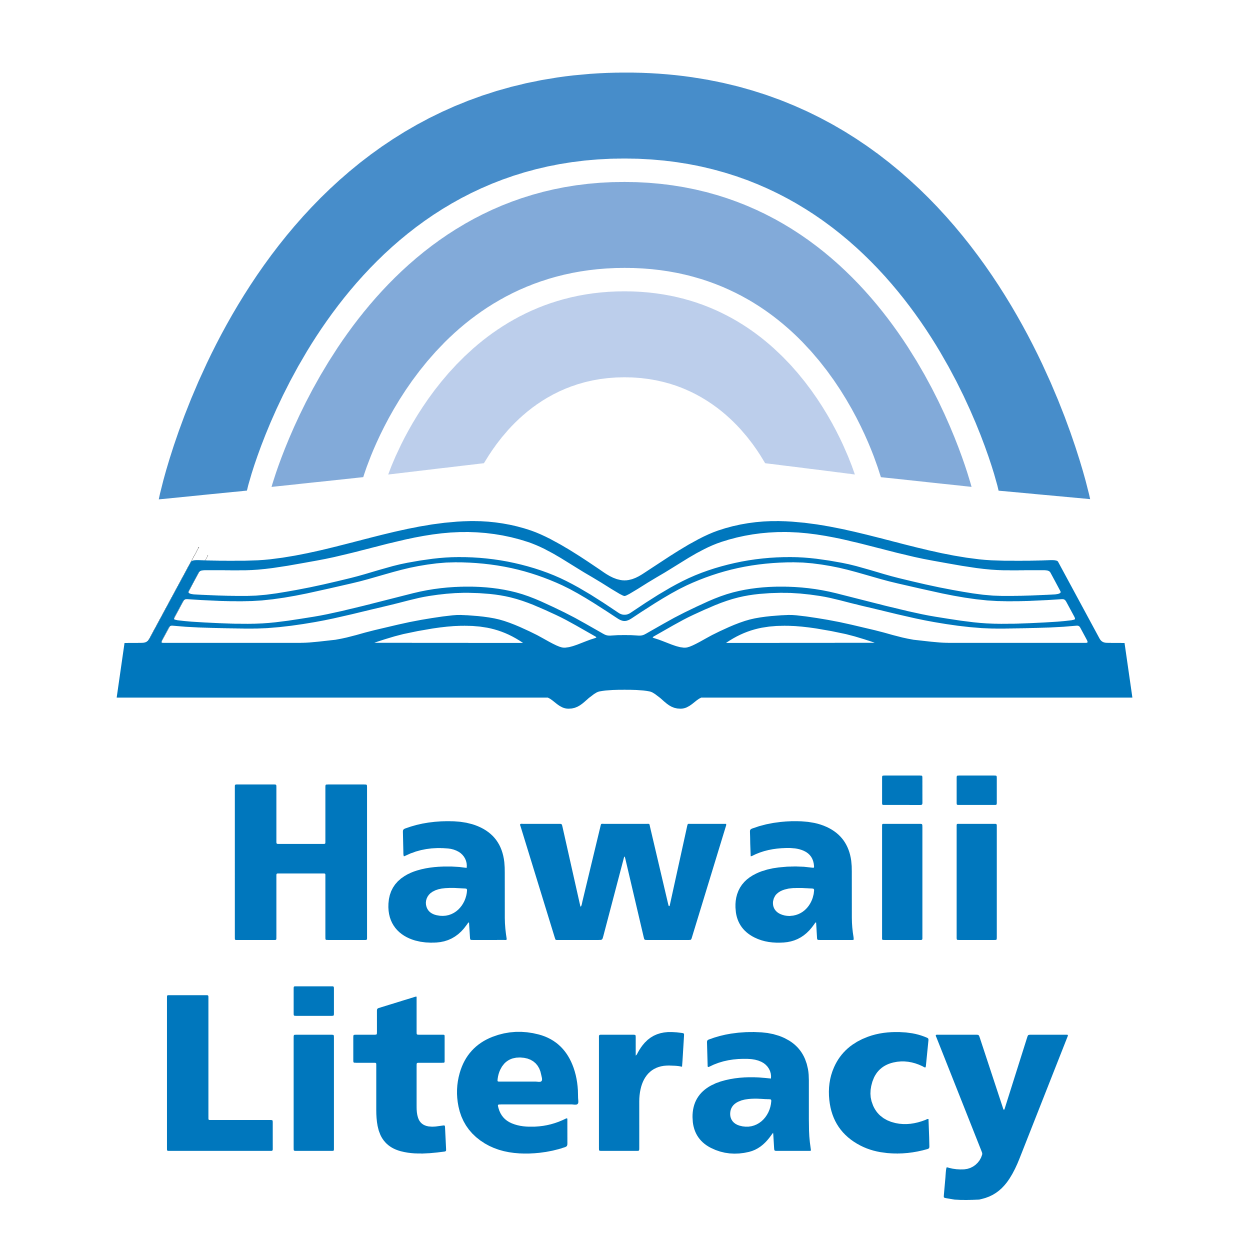 Hawaii Literacy